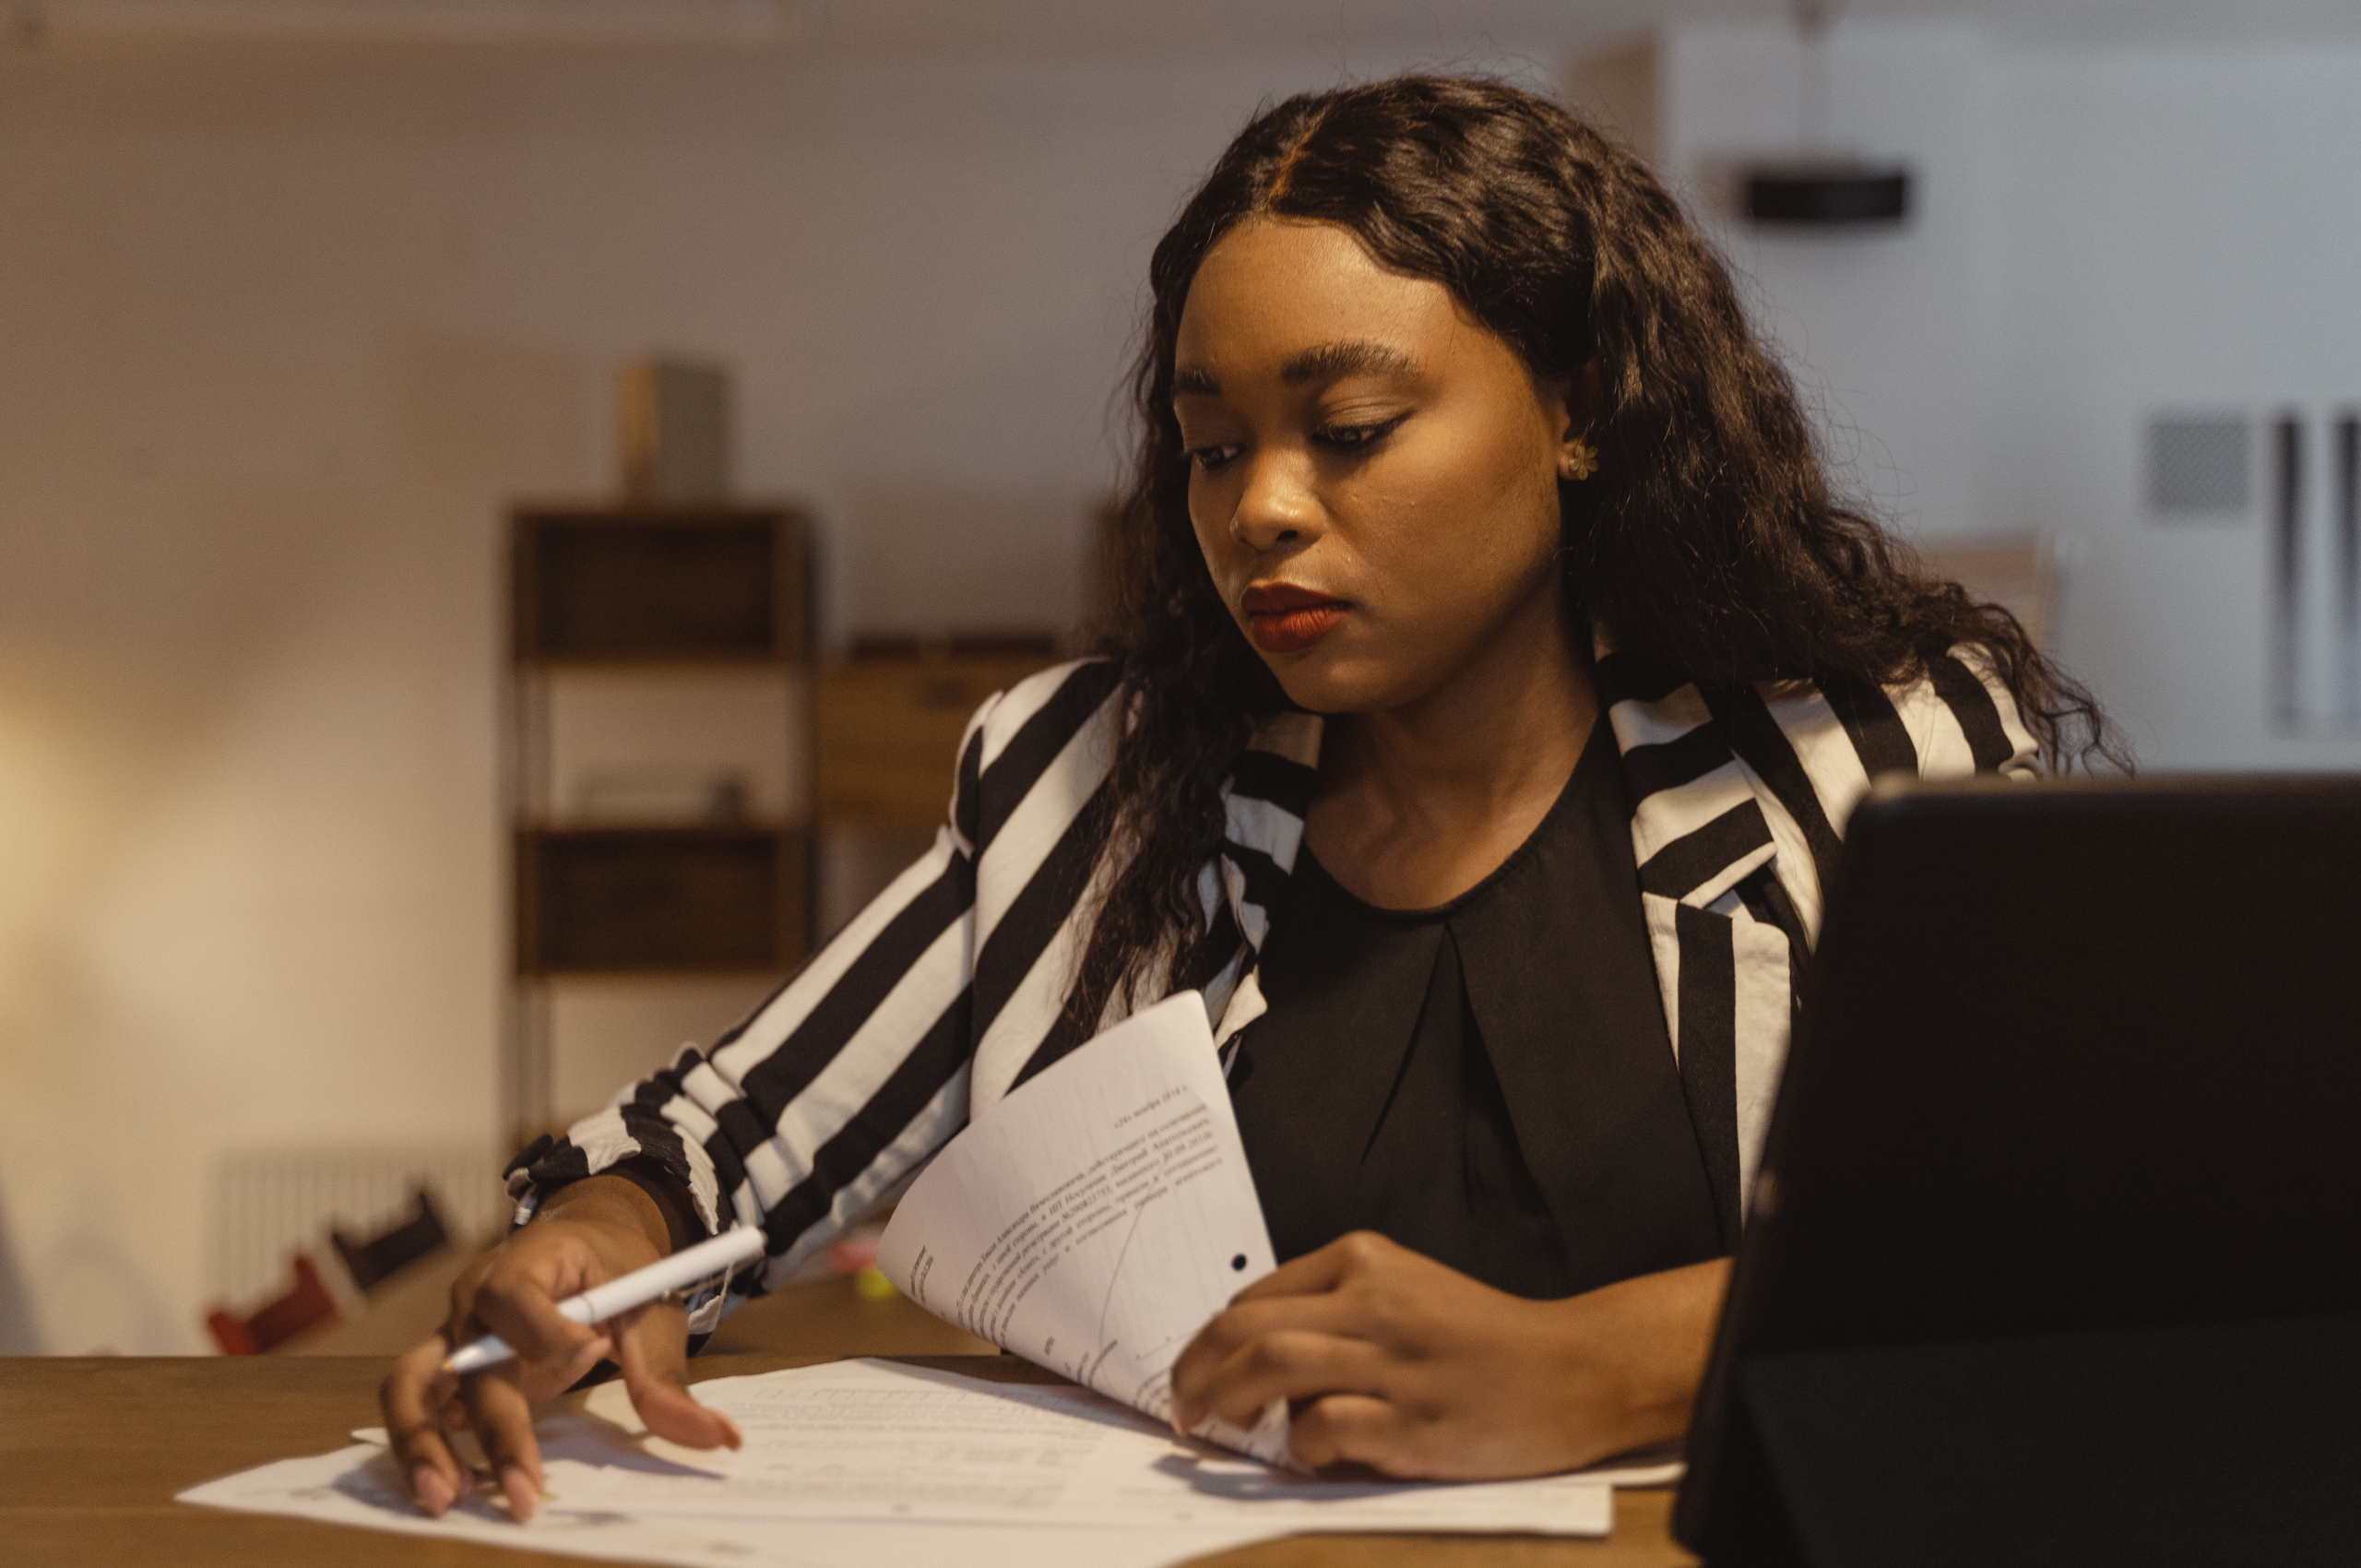 A Black woman sits in front of a laptop. She is turned to the side where she has papers on her desk that she seems to be writing on.